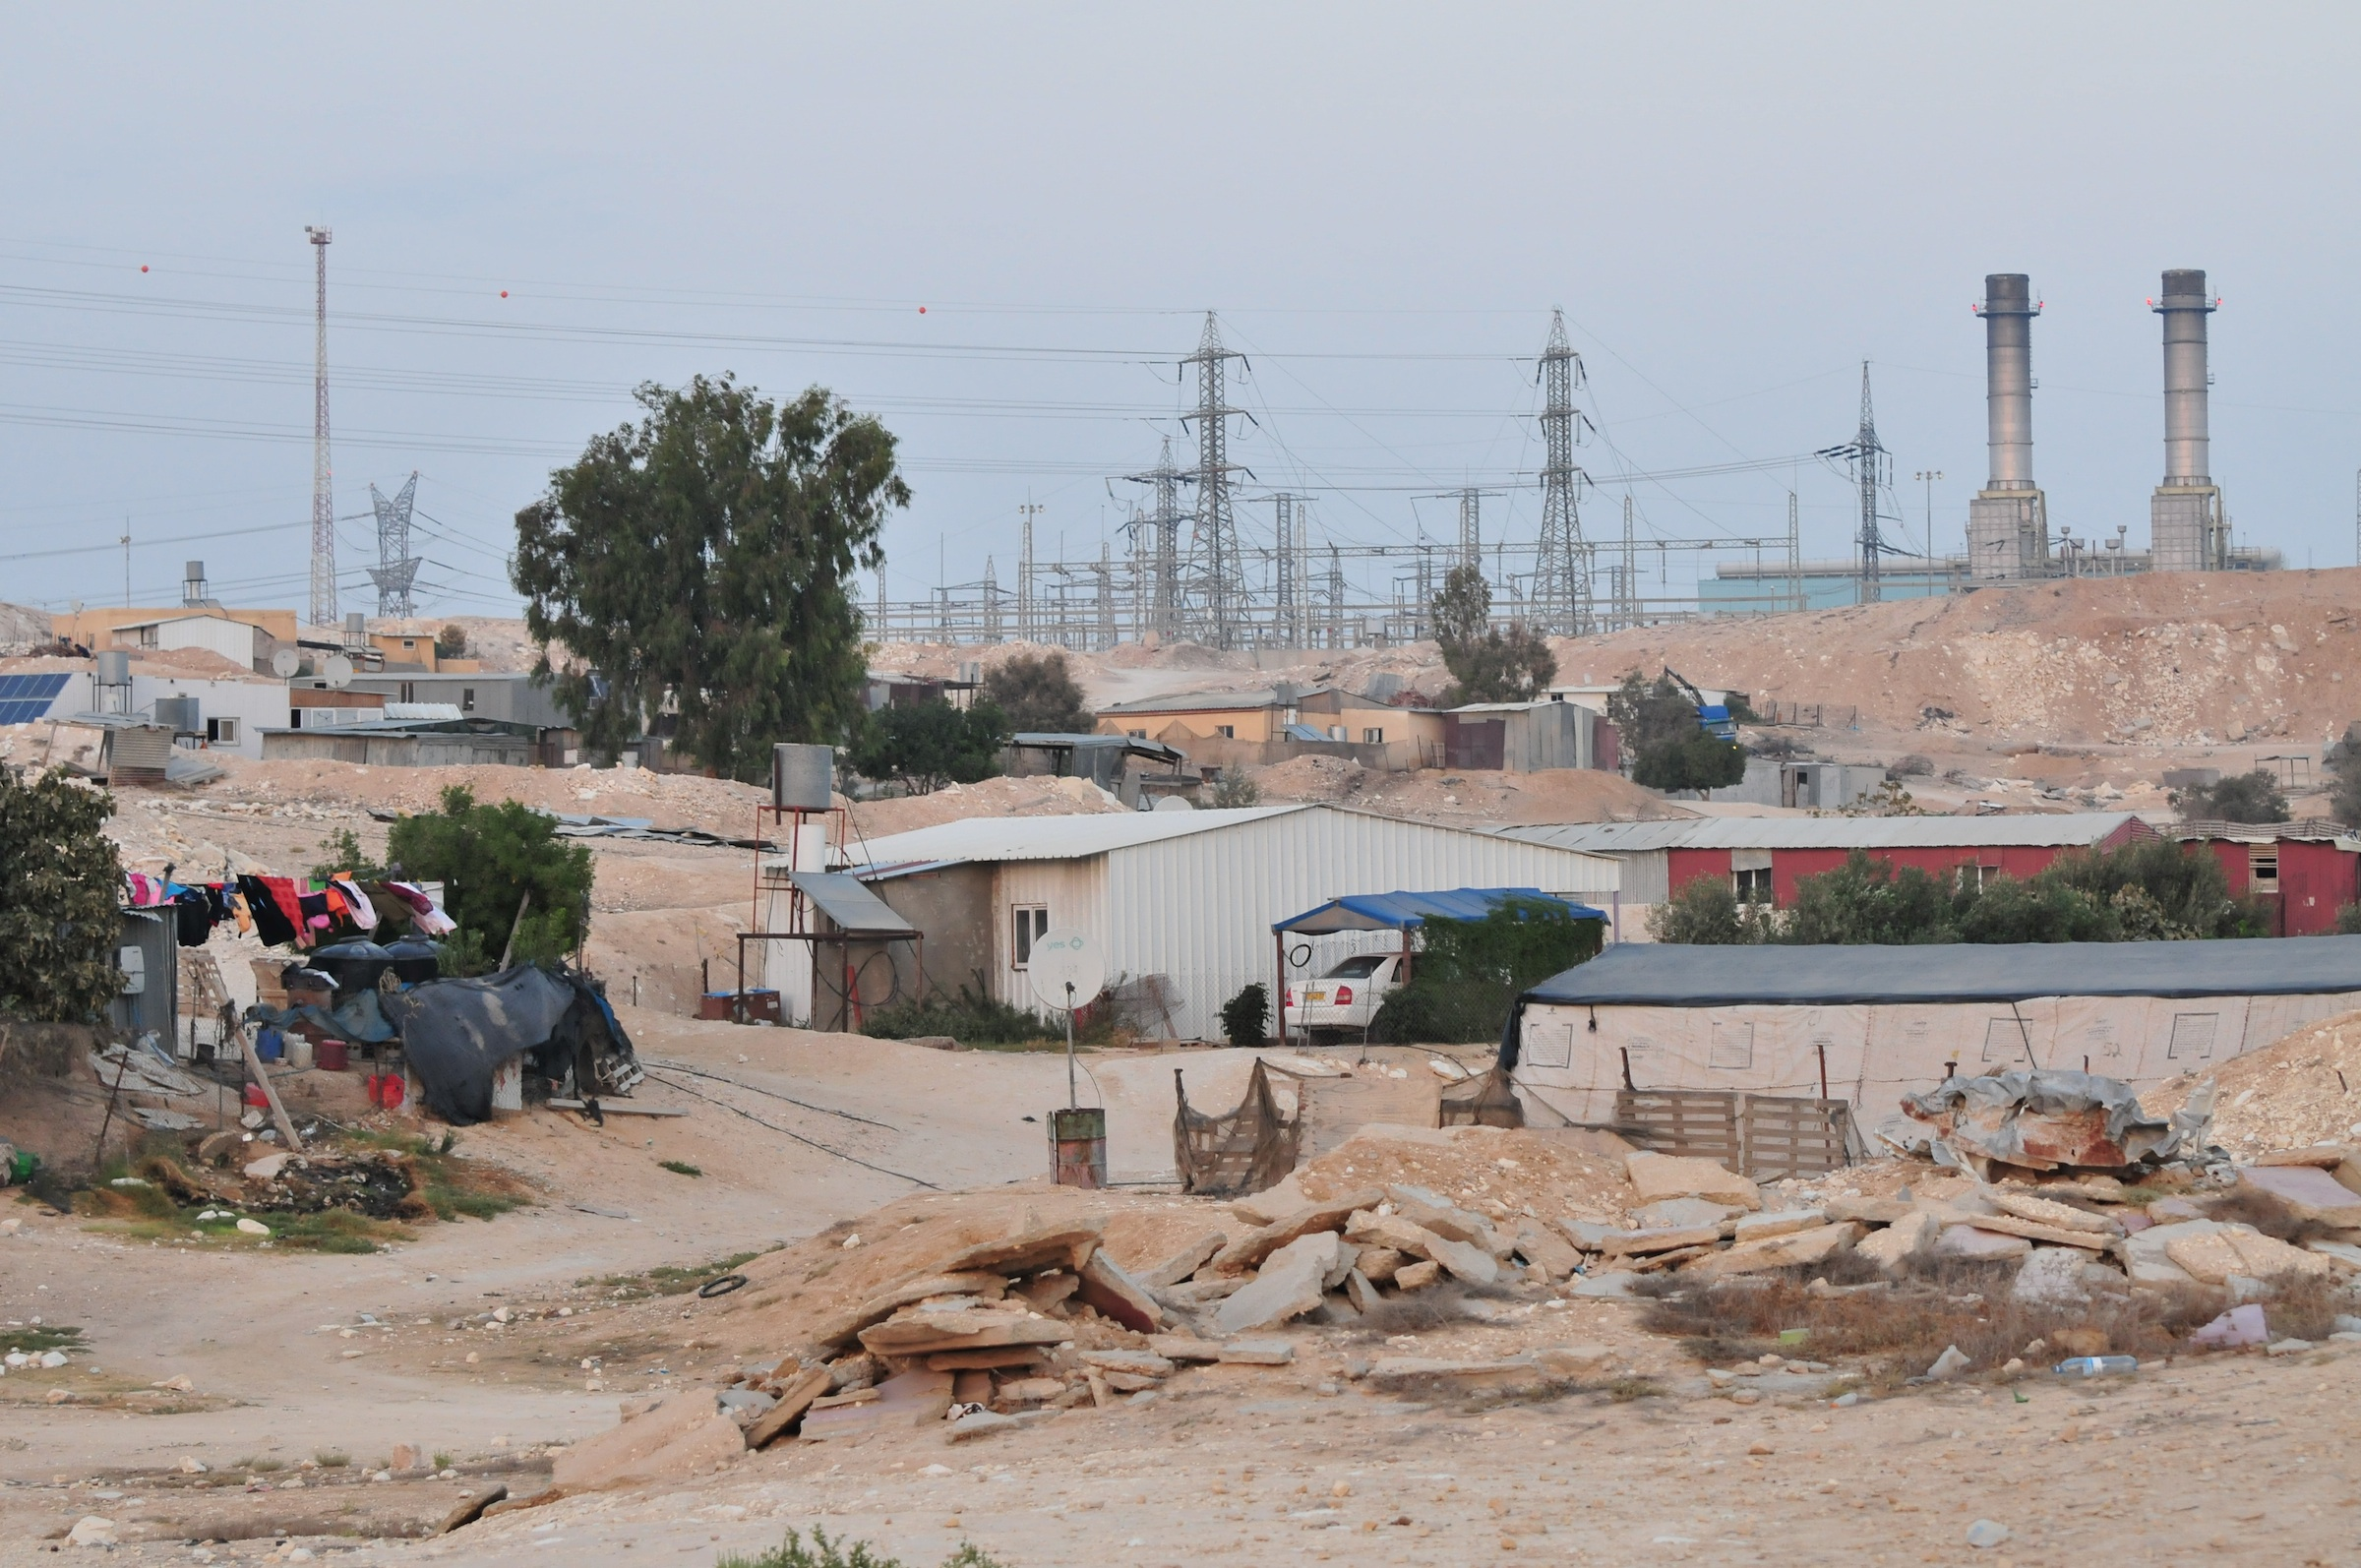 """Click photo to download. Caption: A Bedouin encampment near the Ramat Hovav industrial zone in the Negev. The proposedPrawer Law, which would retroactively legalize tens of thousands of Bedouin structures, has angered anti-settlementsNGOs because it stipulates that several thousand Bedouin must relocate from positions in close proximity to Ramat Hovav, a site that has been deemed unsuitable for residential zoning due to the pollutants emitted from the factories. Credit: Shay Levy/Flash90.                0    0    1    39    215    JNS    3    1    253    14.0                          Normal    0                false    false    false       EN-US    JA    X-NONE                                                                                                                                                                                                                                                                                                                                                                                                                                                                                                                                                  /* Style Definitions */ table.MsoNormalTable {mso-style-name:""""Table Normal""""; mso-tstyle-rowband-size:0; mso-tstyle-colband-size:0; mso-style-noshow:yes; mso-style-priority:99; mso-style-parent:""""""""; mso-padding-alt:0in 5.4pt 0in 5.4pt; mso-para-margin:0in; mso-para-margin-bottom:.0001pt; mso-pagination:widow-orphan; font-size:12.0pt; font-family:Cambria; mso-ascii-font-family:Cambria; mso-ascii-theme-font:minor-latin; mso-hansi-font-family:Cambria; mso-hansi-theme-font:minor-latin;}                             0    0    1    13    74    JNS    1    1    86    14.0                          Normal    0                false    false    false       EN-US    JA    X-NONE                                                                                                                                 """